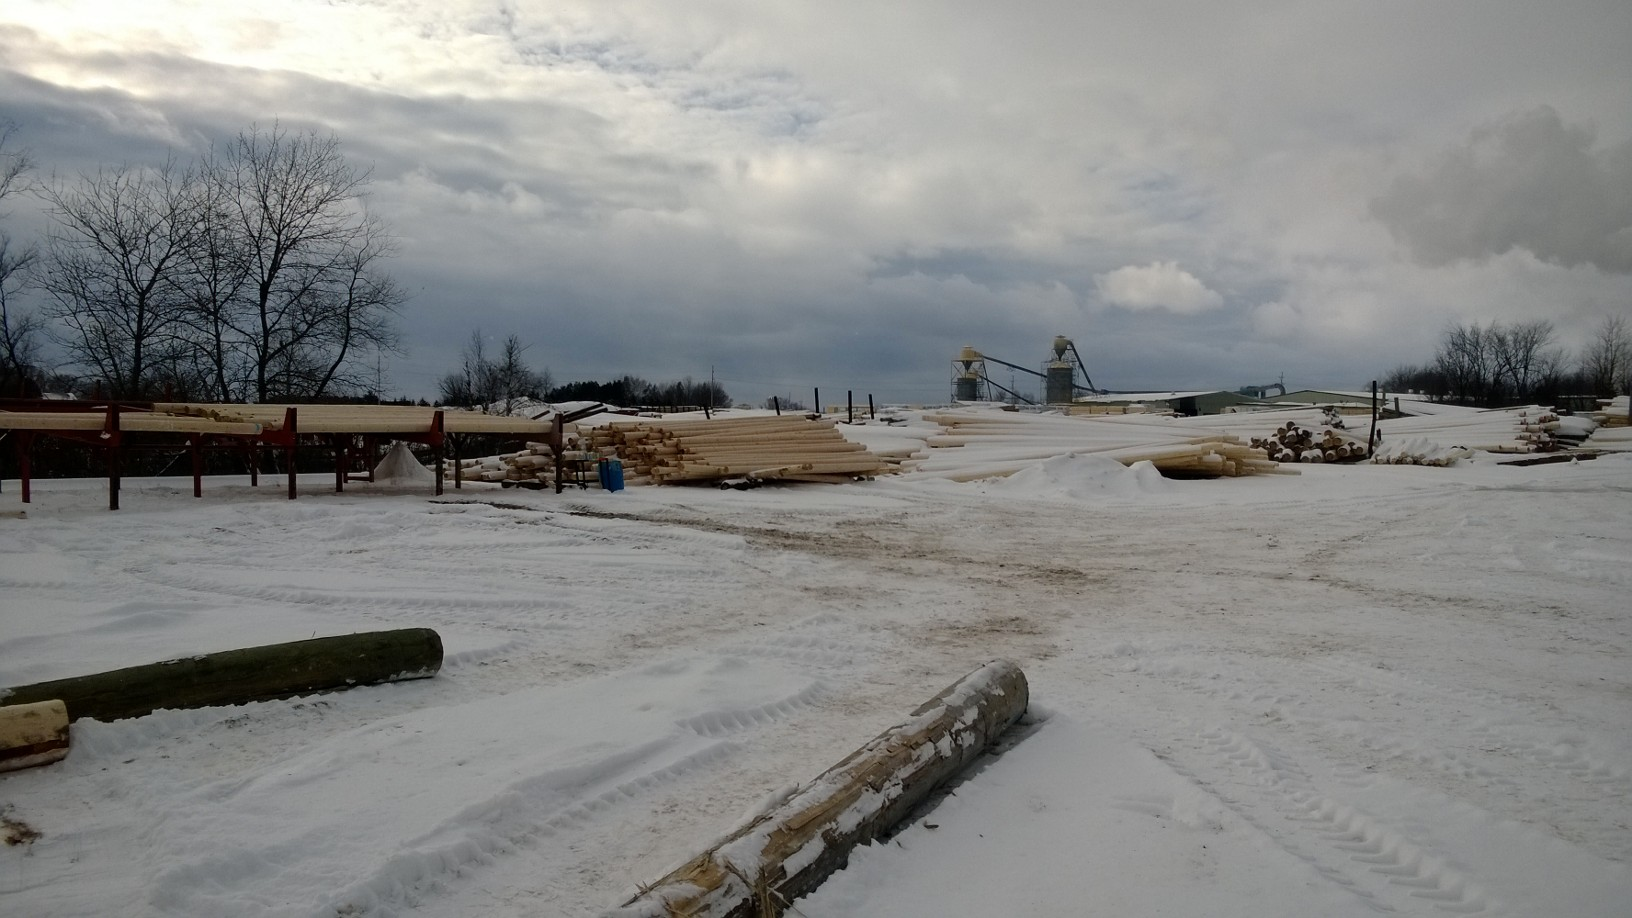 Hydrolake log yard in Cadillac, MI